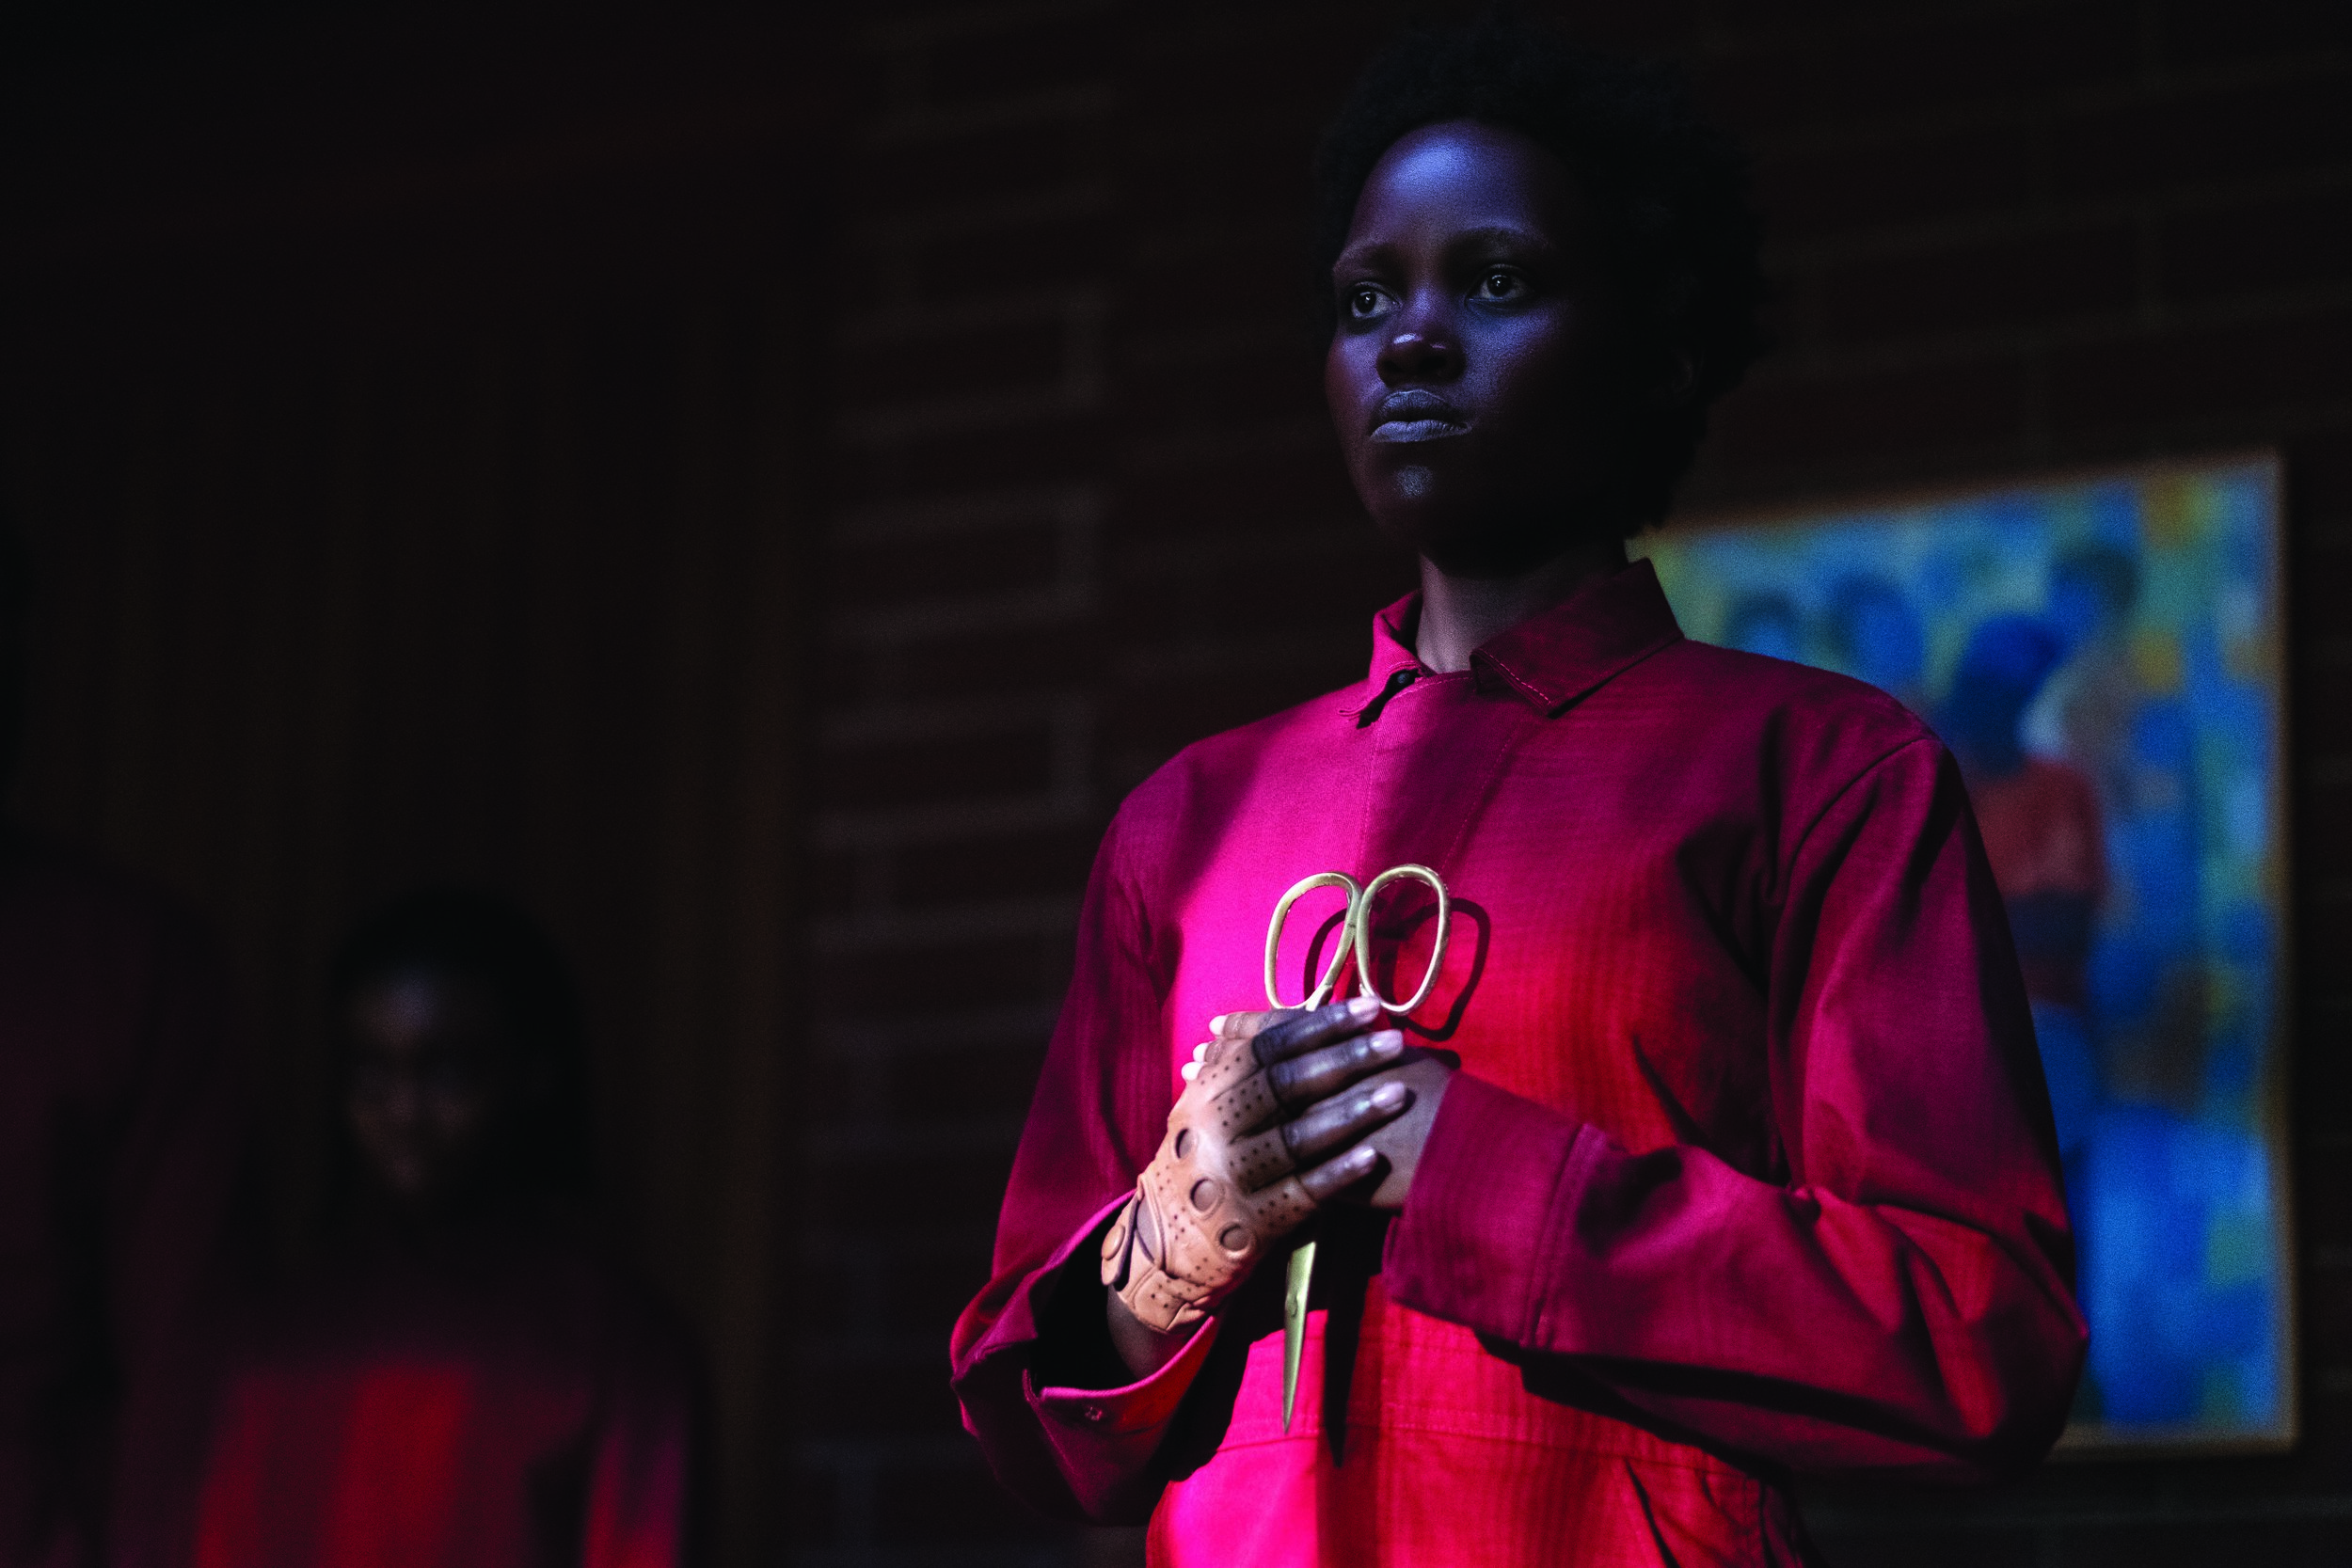 Lupita Nyong'o playing her bad self in Jordan Peele's Us.